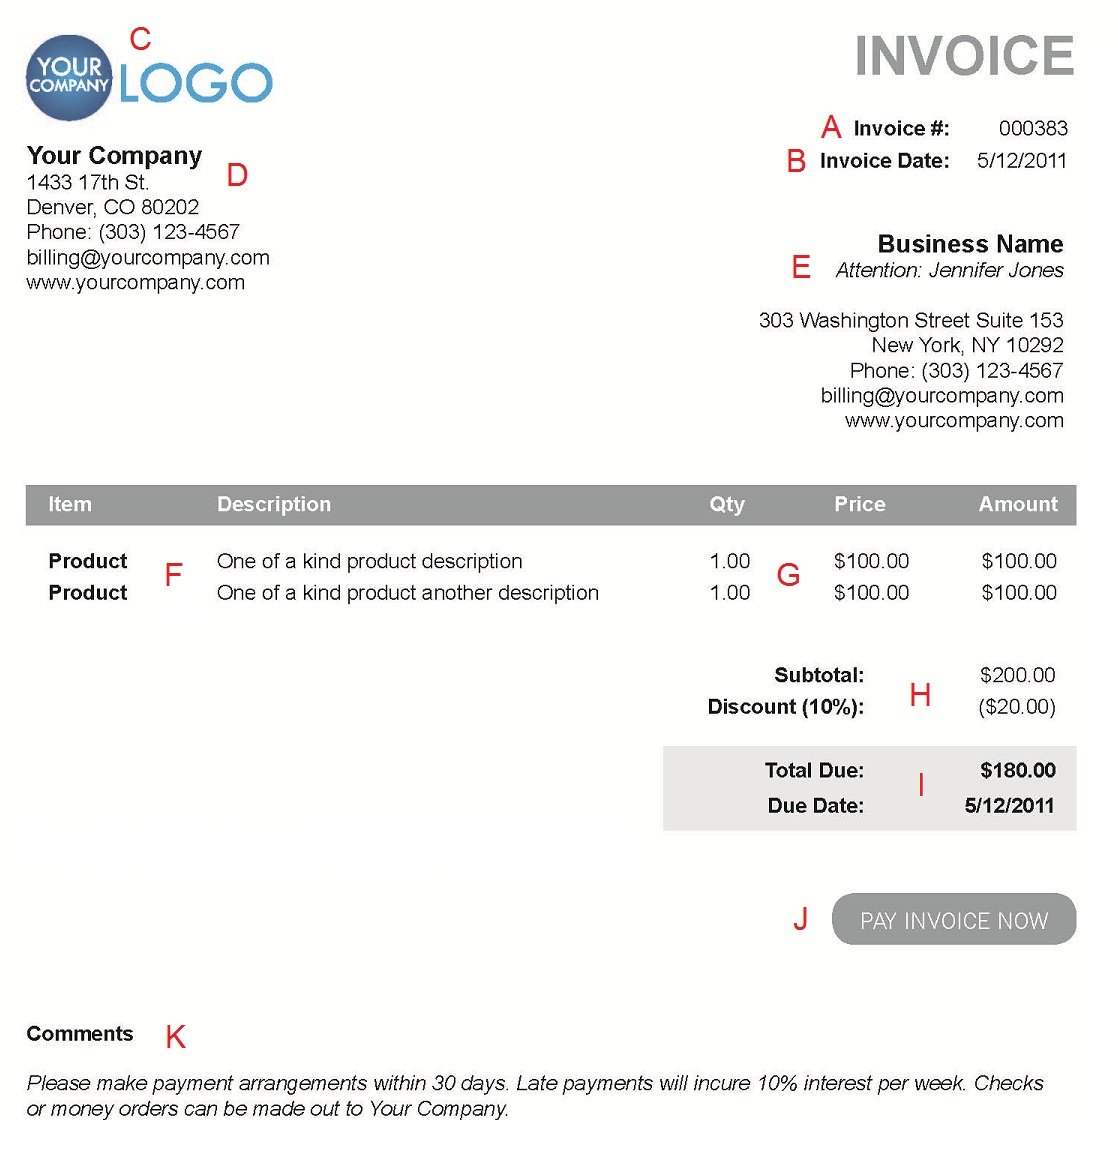 Occupyhistoryus  Ravishing The  Different Sections Of An Electronic Payment Invoice With Inspiring A  With Attractive Invoice App For Android Also Toyota Highlander Invoice Price In Addition Printed Invoices And Canadian Commercial Invoice As Well As Download Free Invoice Template Additionally Aia Invoice From Paysimplecom With Occupyhistoryus  Inspiring The  Different Sections Of An Electronic Payment Invoice With Attractive A  And Ravishing Invoice App For Android Also Toyota Highlander Invoice Price In Addition Printed Invoices From Paysimplecom